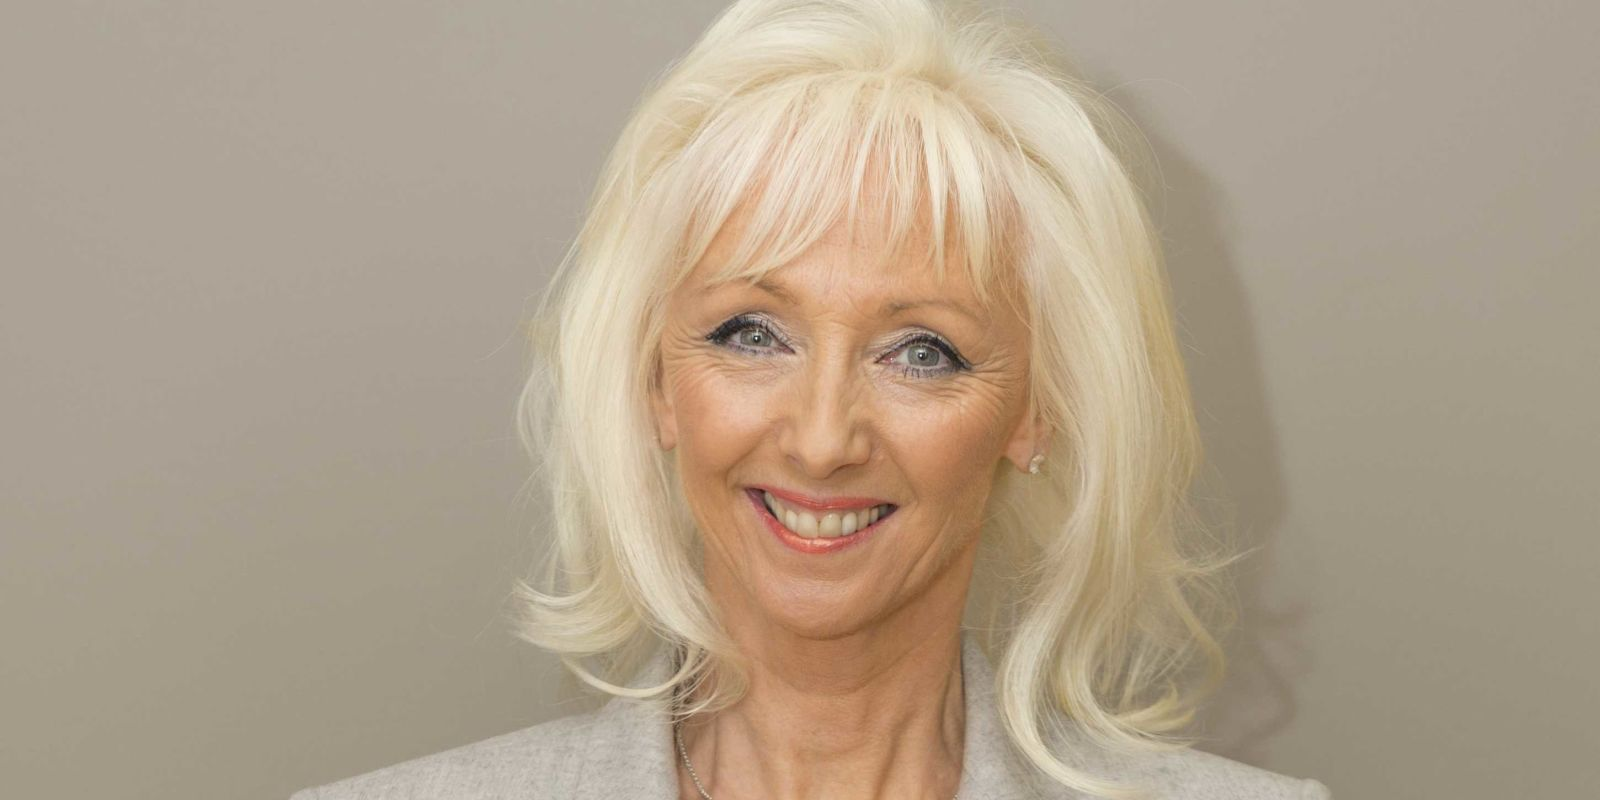 Debbie McGee of Strictly Come Dancing reflects Mrs. Merton's iconic interview